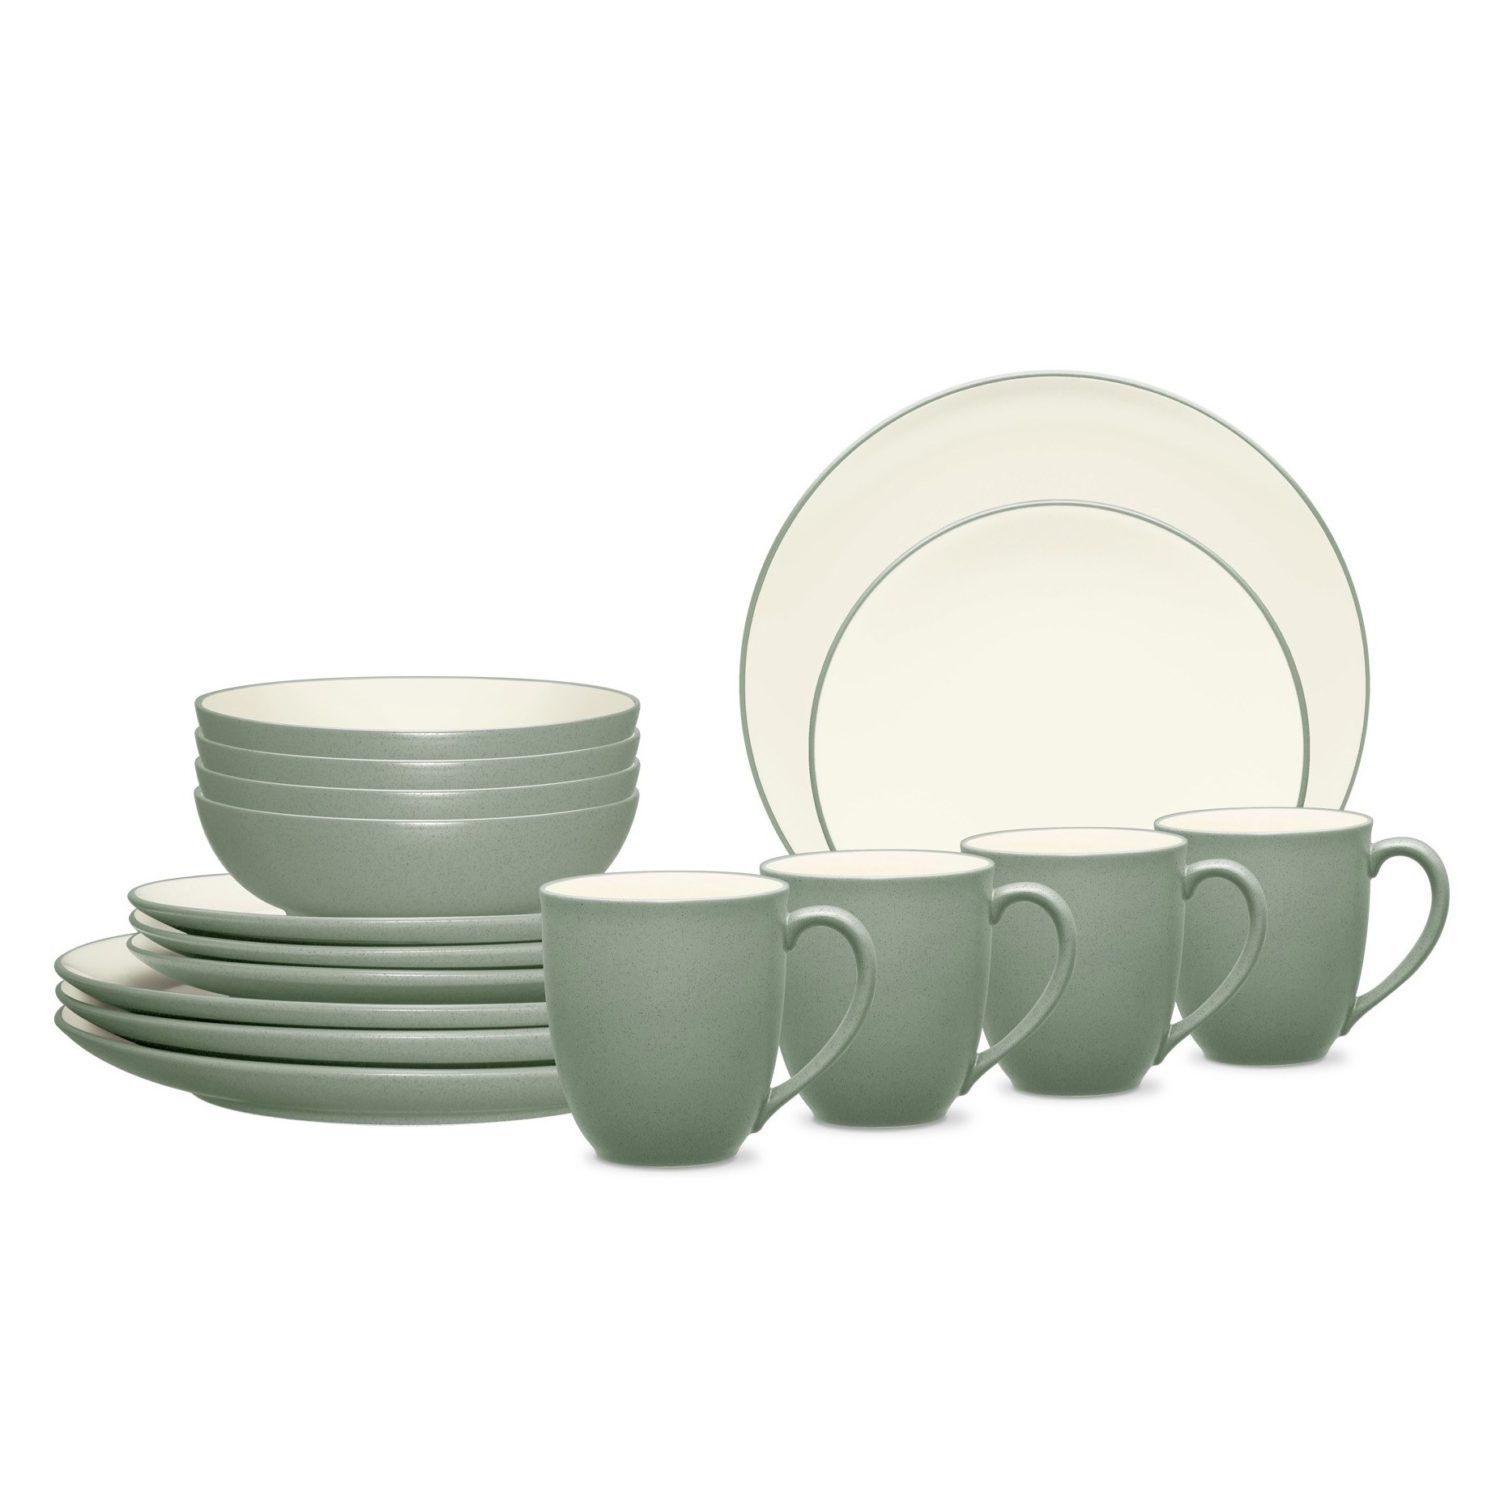 Noritake Colorwave Green Coupe 16-Piece Dinnerware Set